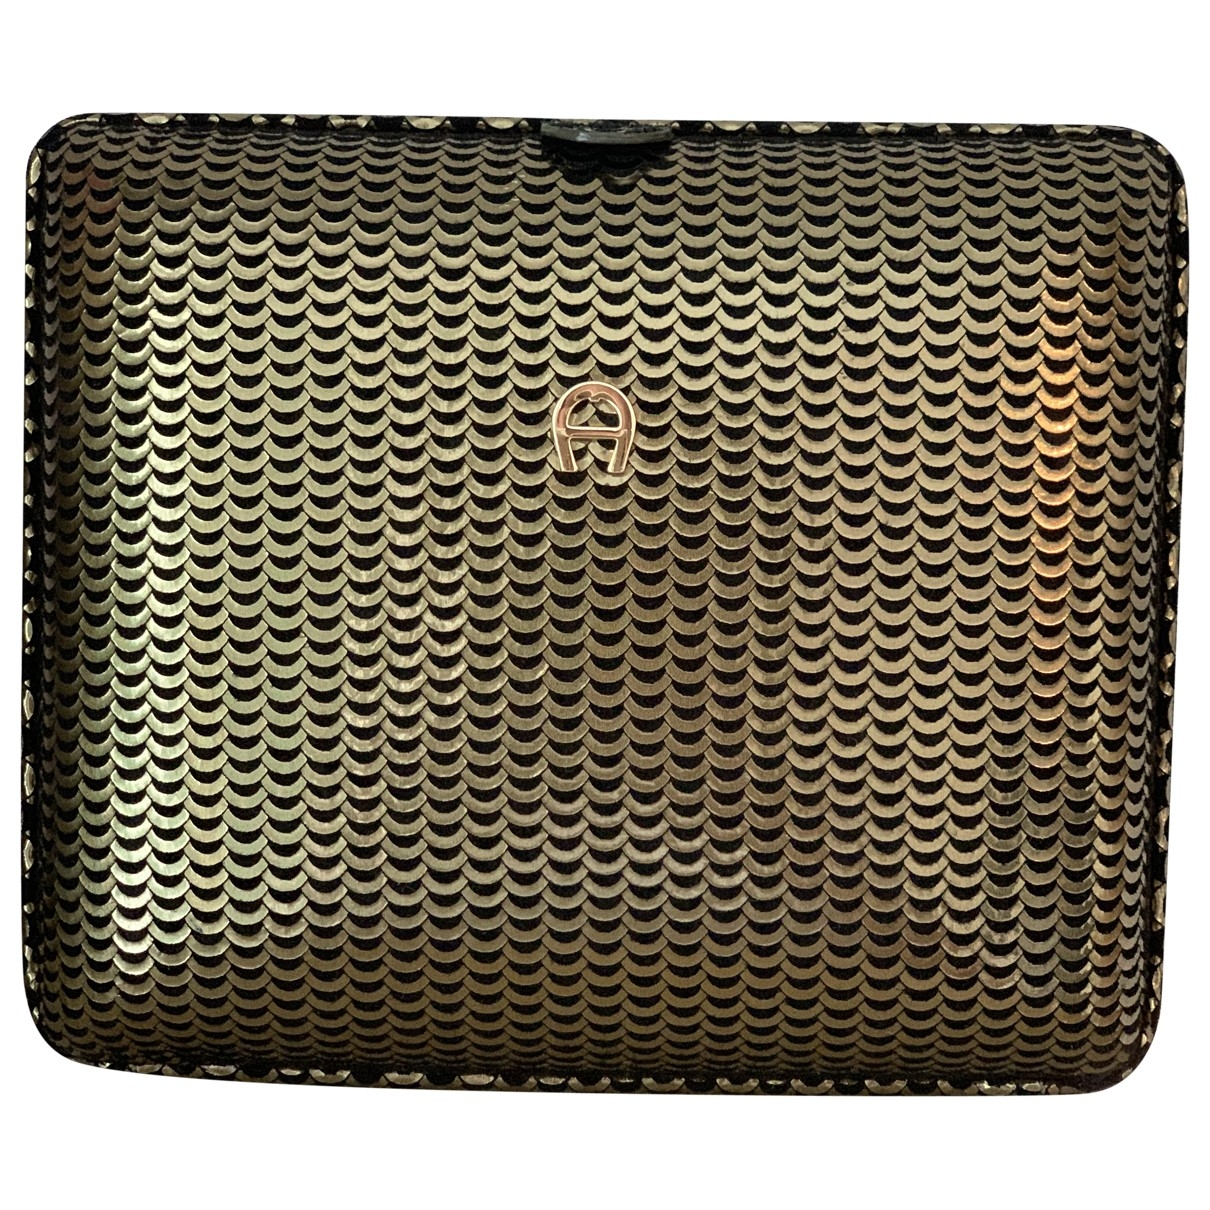 Aigner \N Clutch in  Gruen Leder